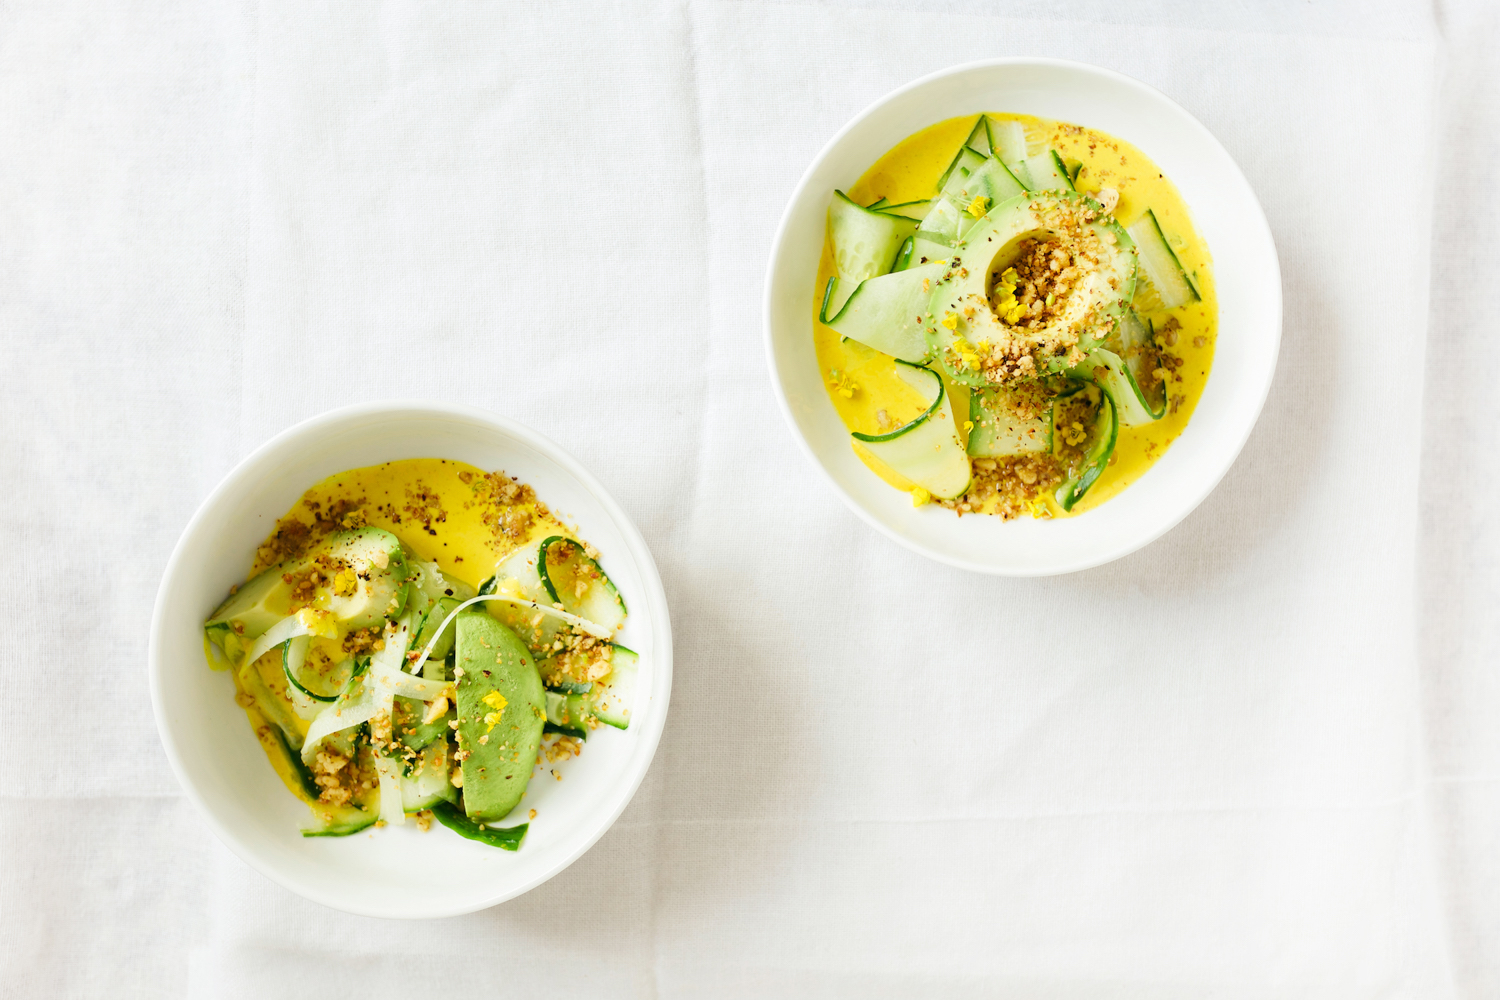 Food Styling - For cookbooks, print, digital, brands, and video